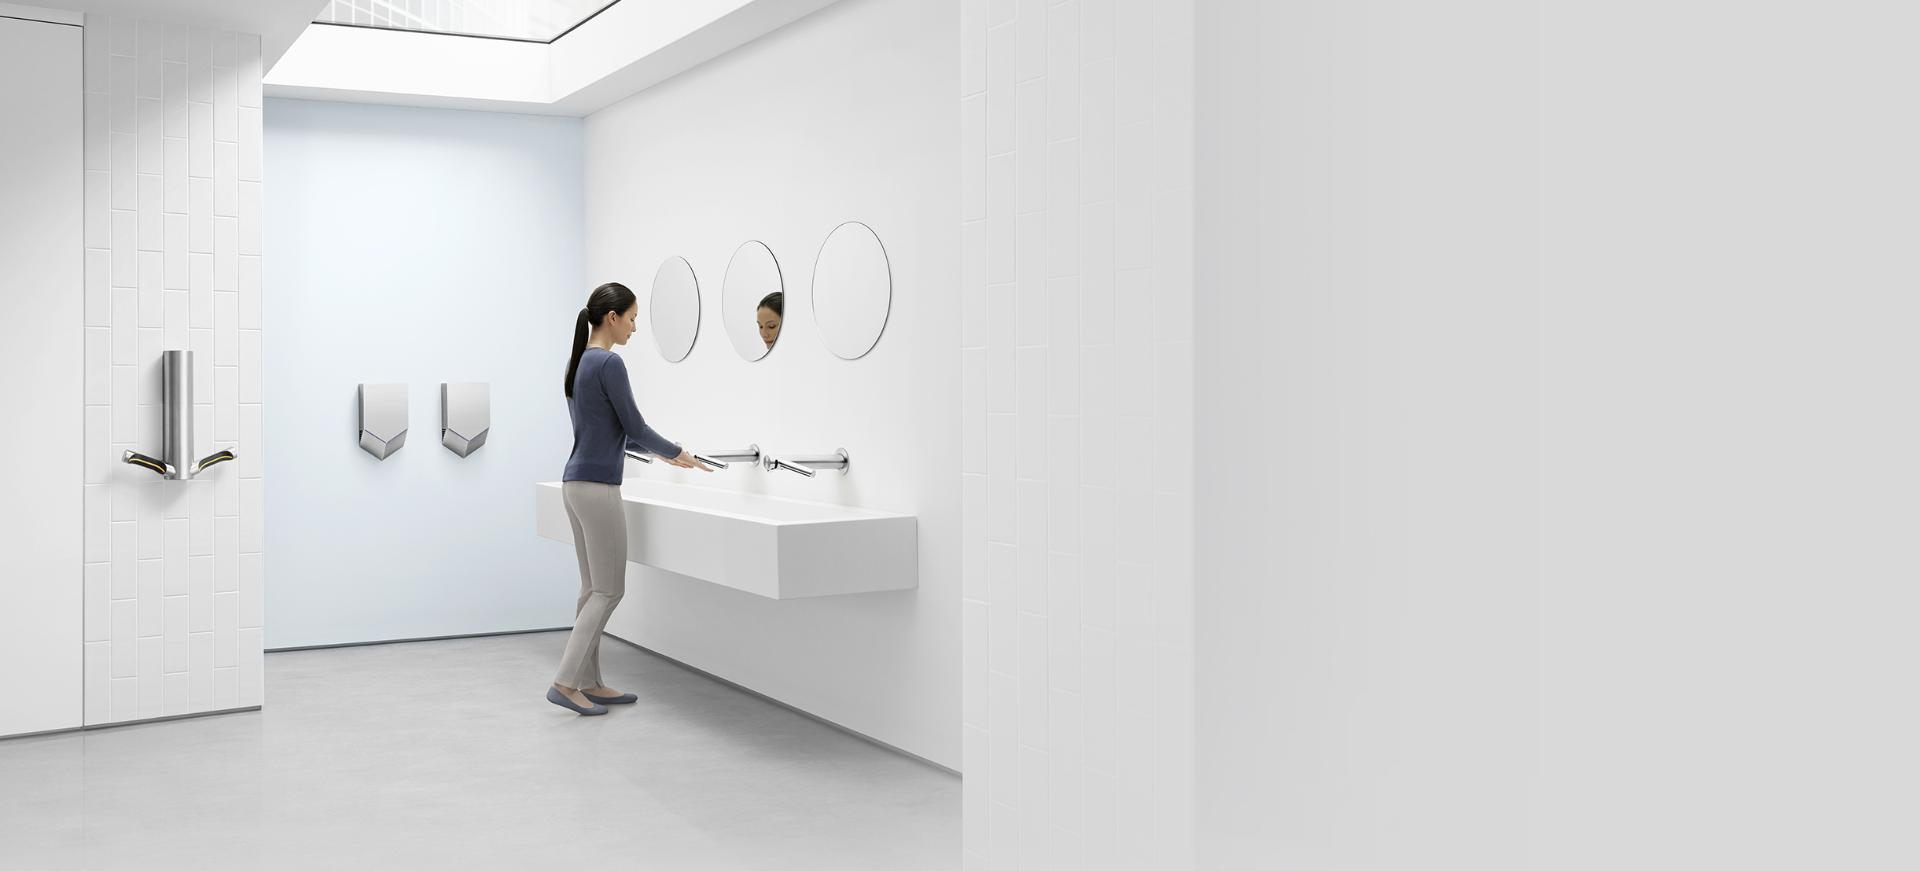 Woman drying hands at the Dyson Airblade Wash+Dry